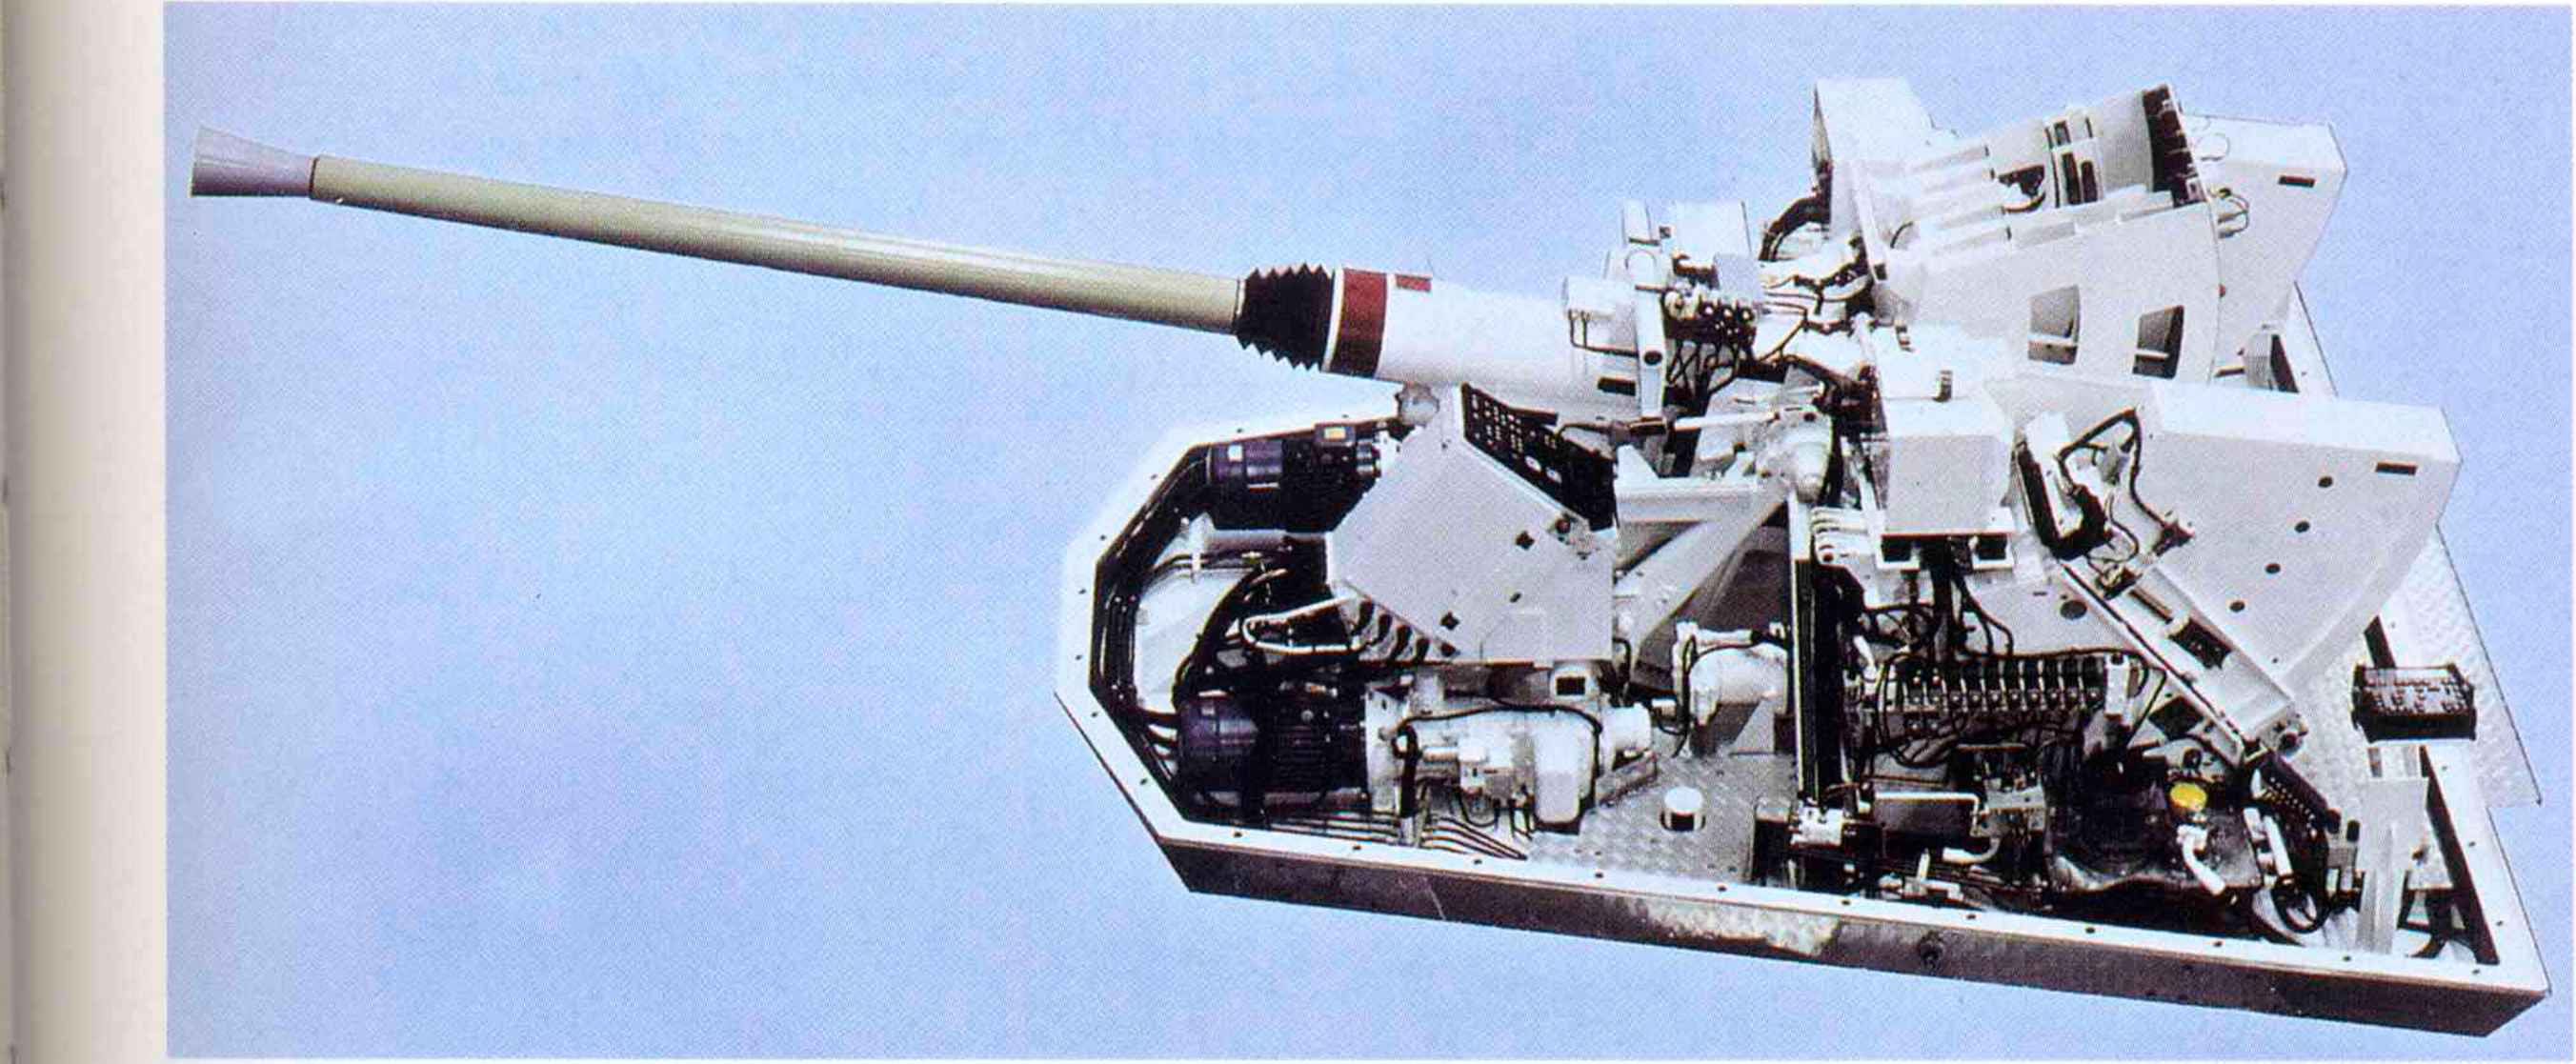 Bofors 57mm Gun Ammo Feed